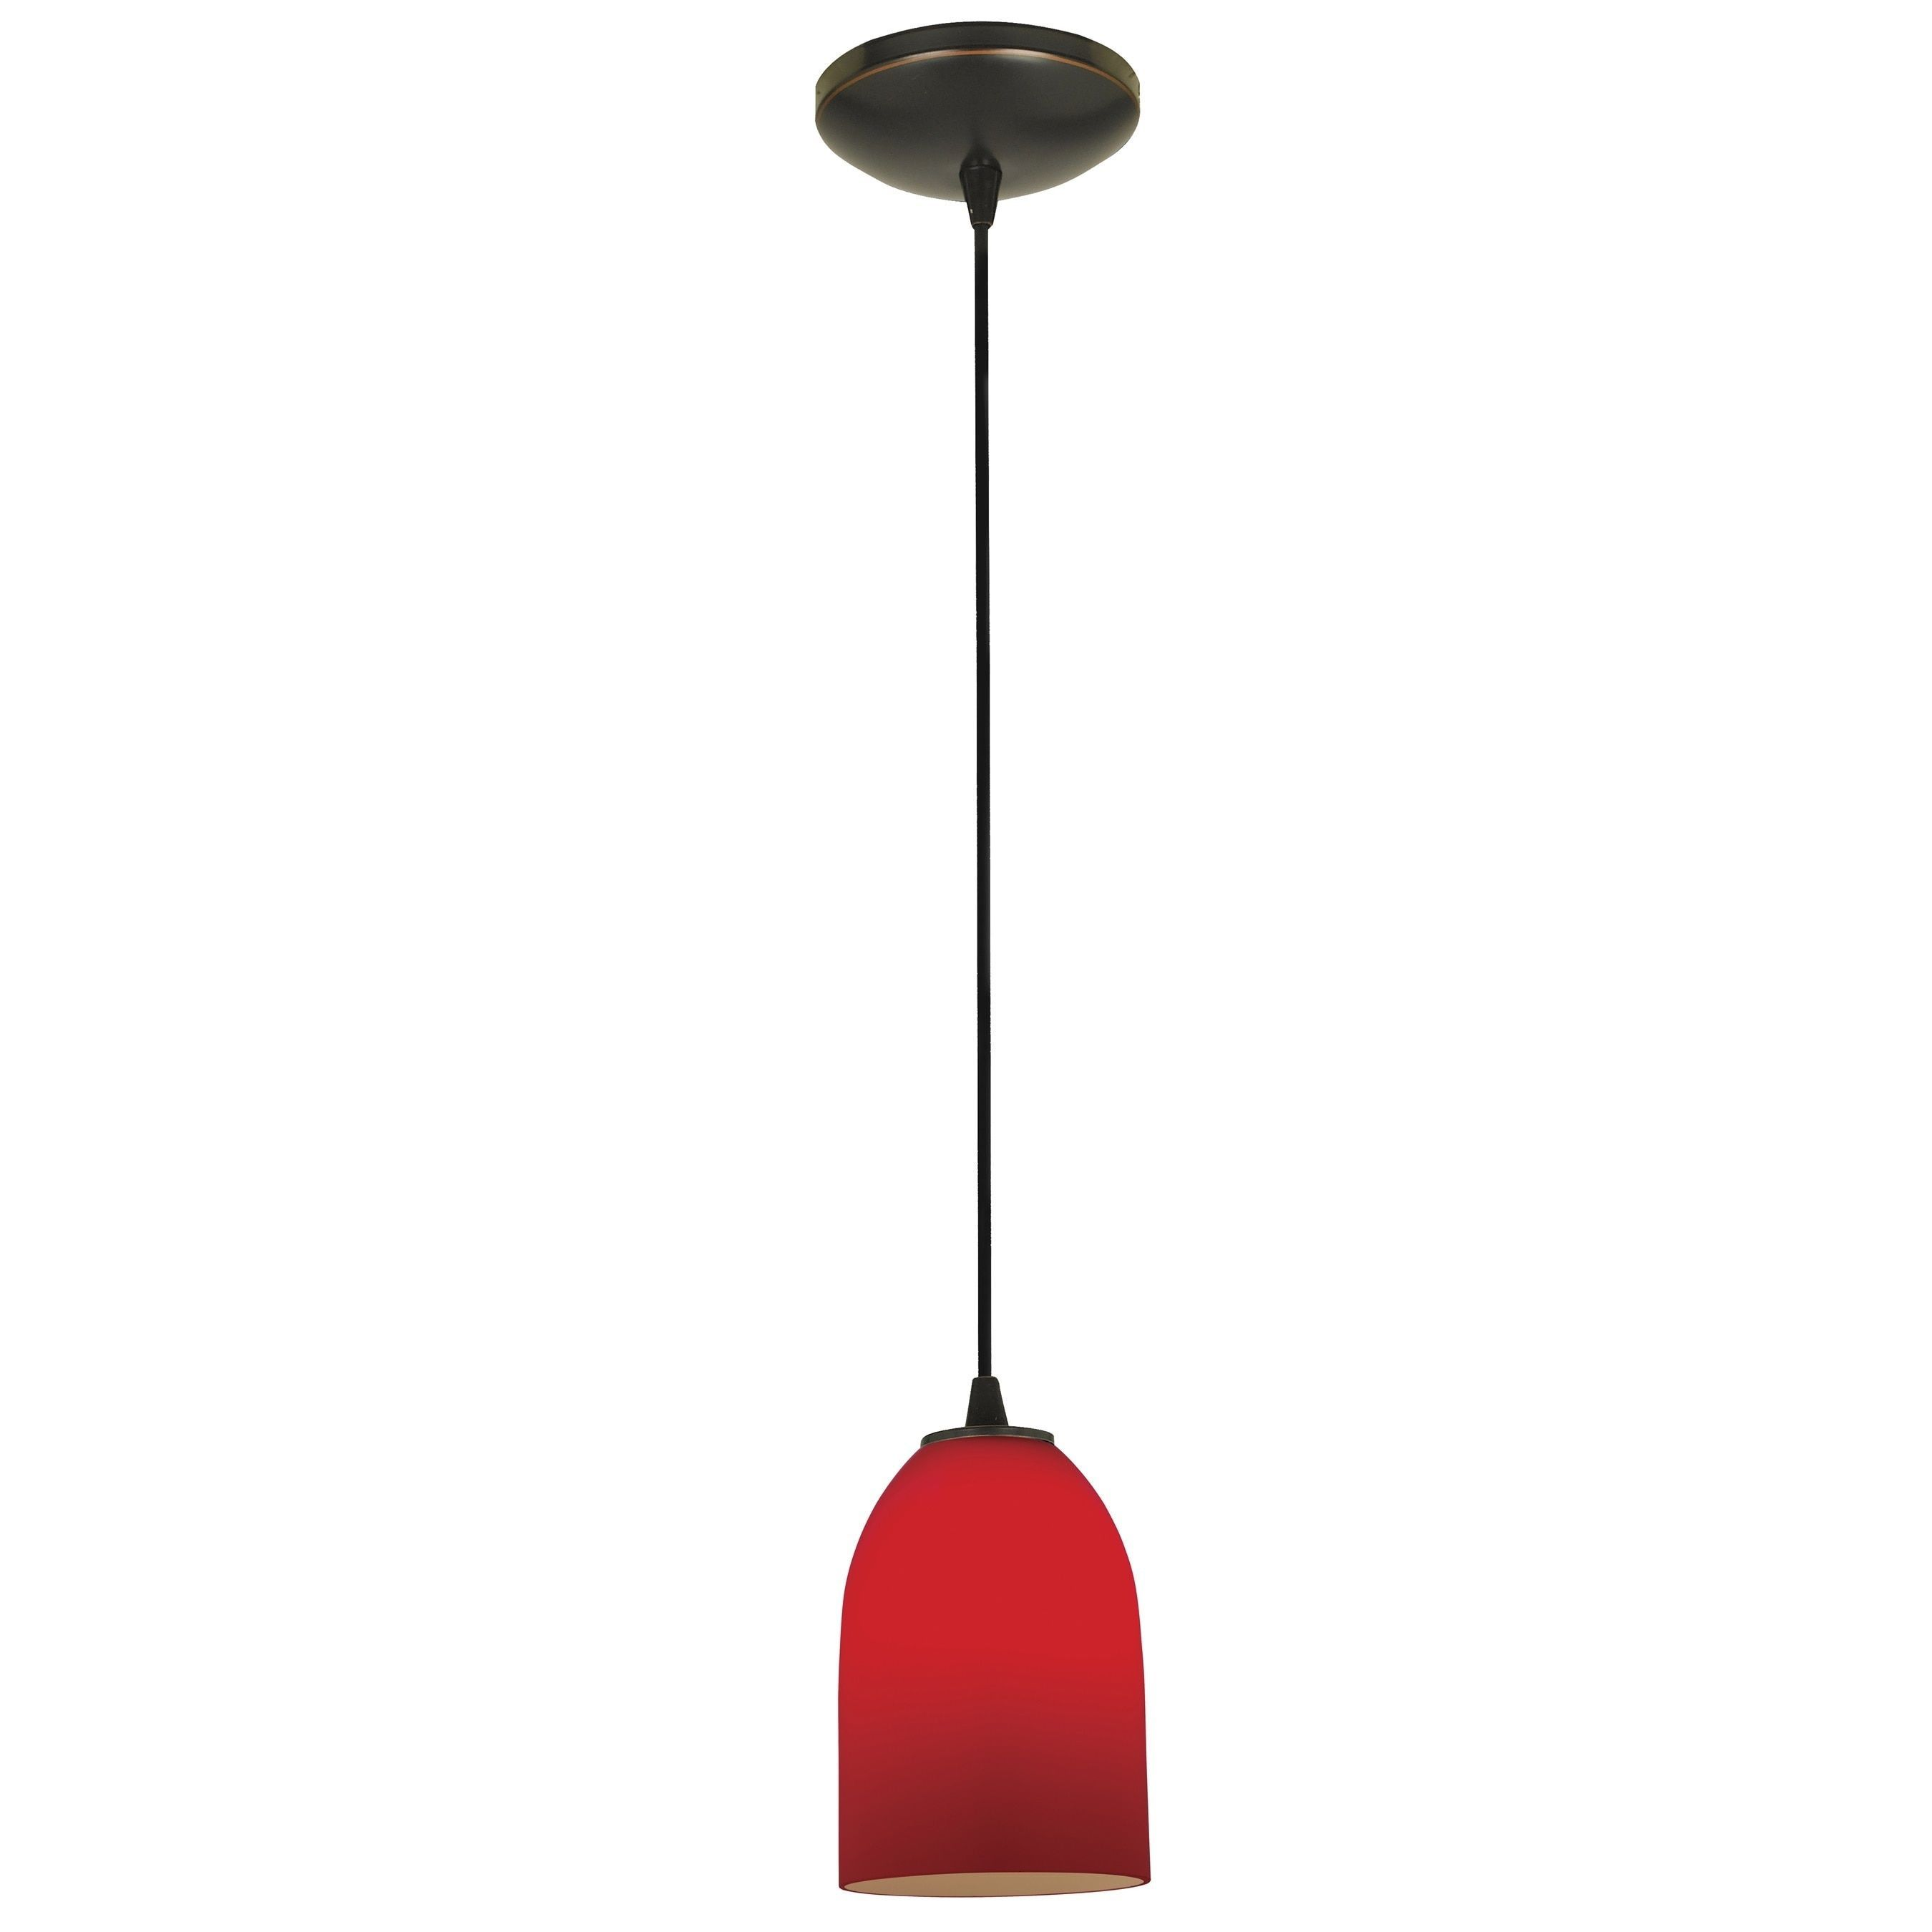 Luxury Hanging Lamps with Plug In Cord